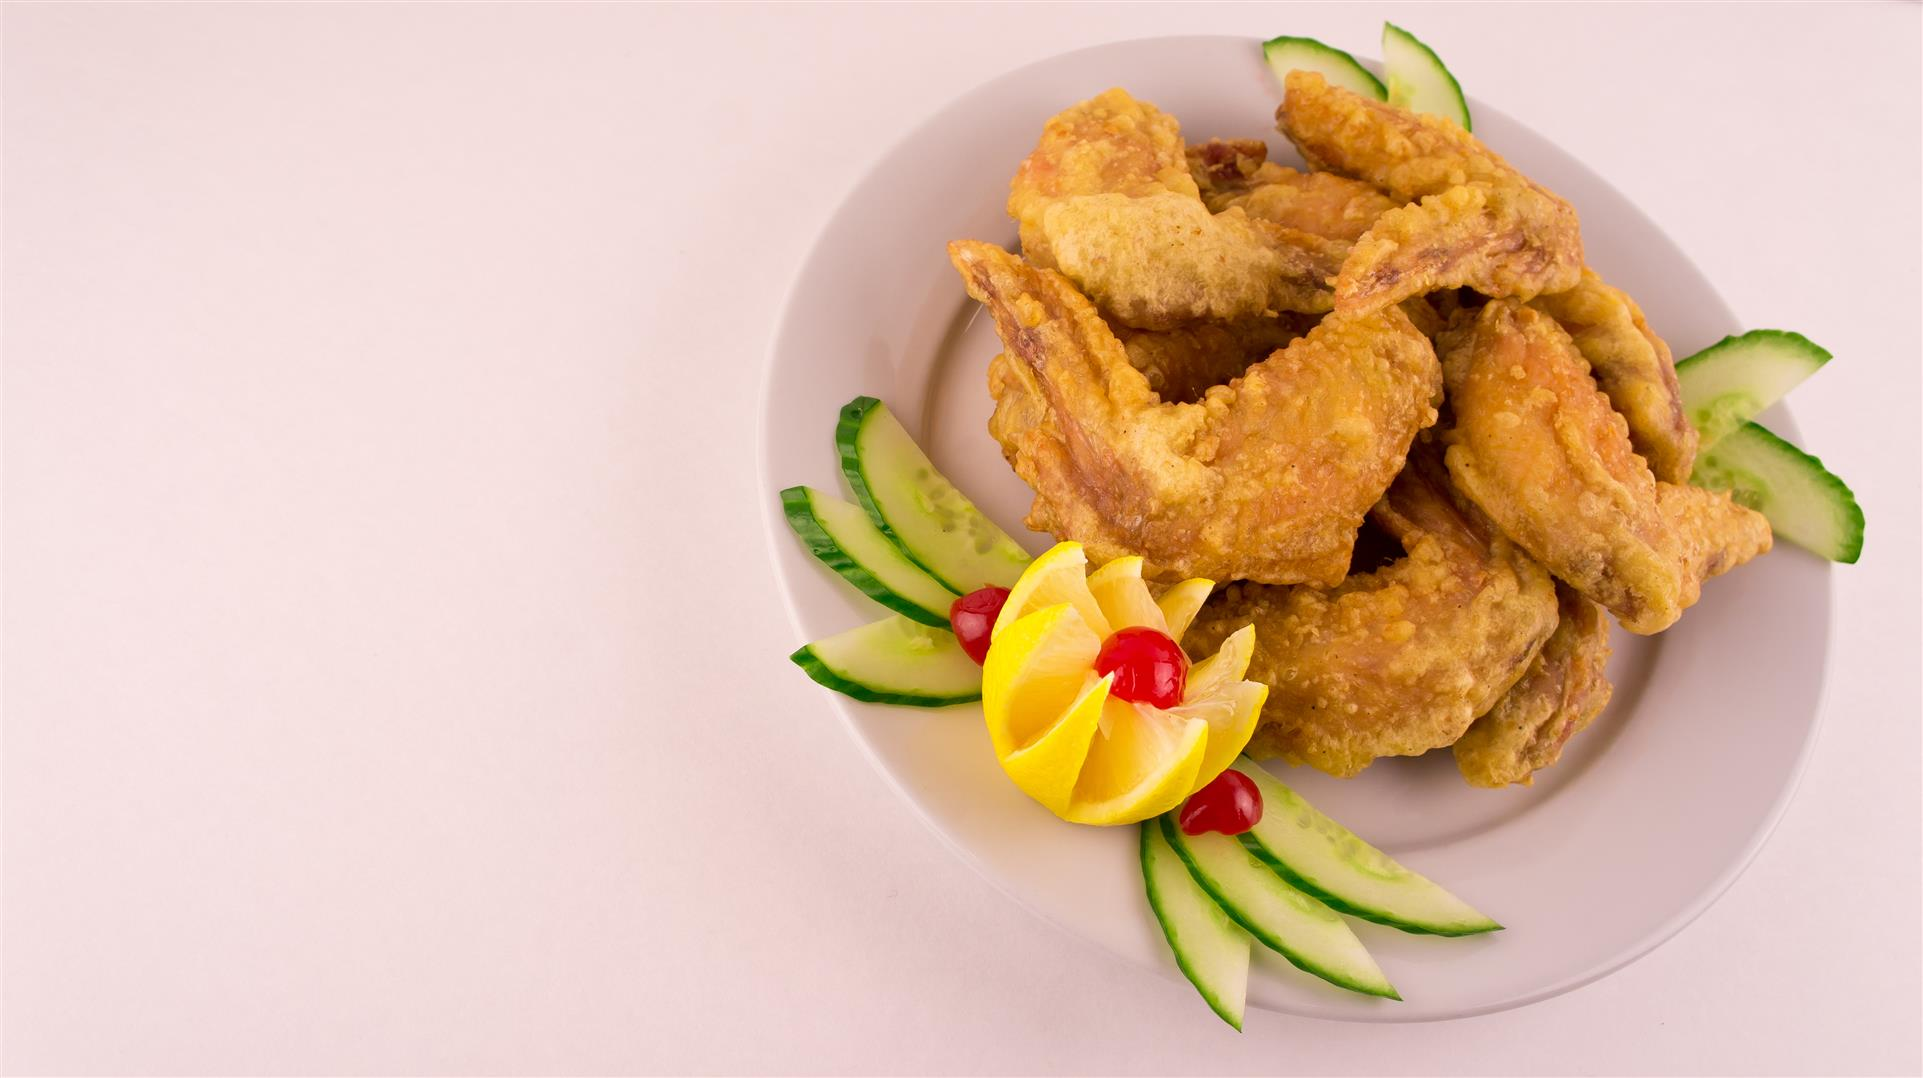 plate of fried chicken wings, garnished with lemon and cucumber